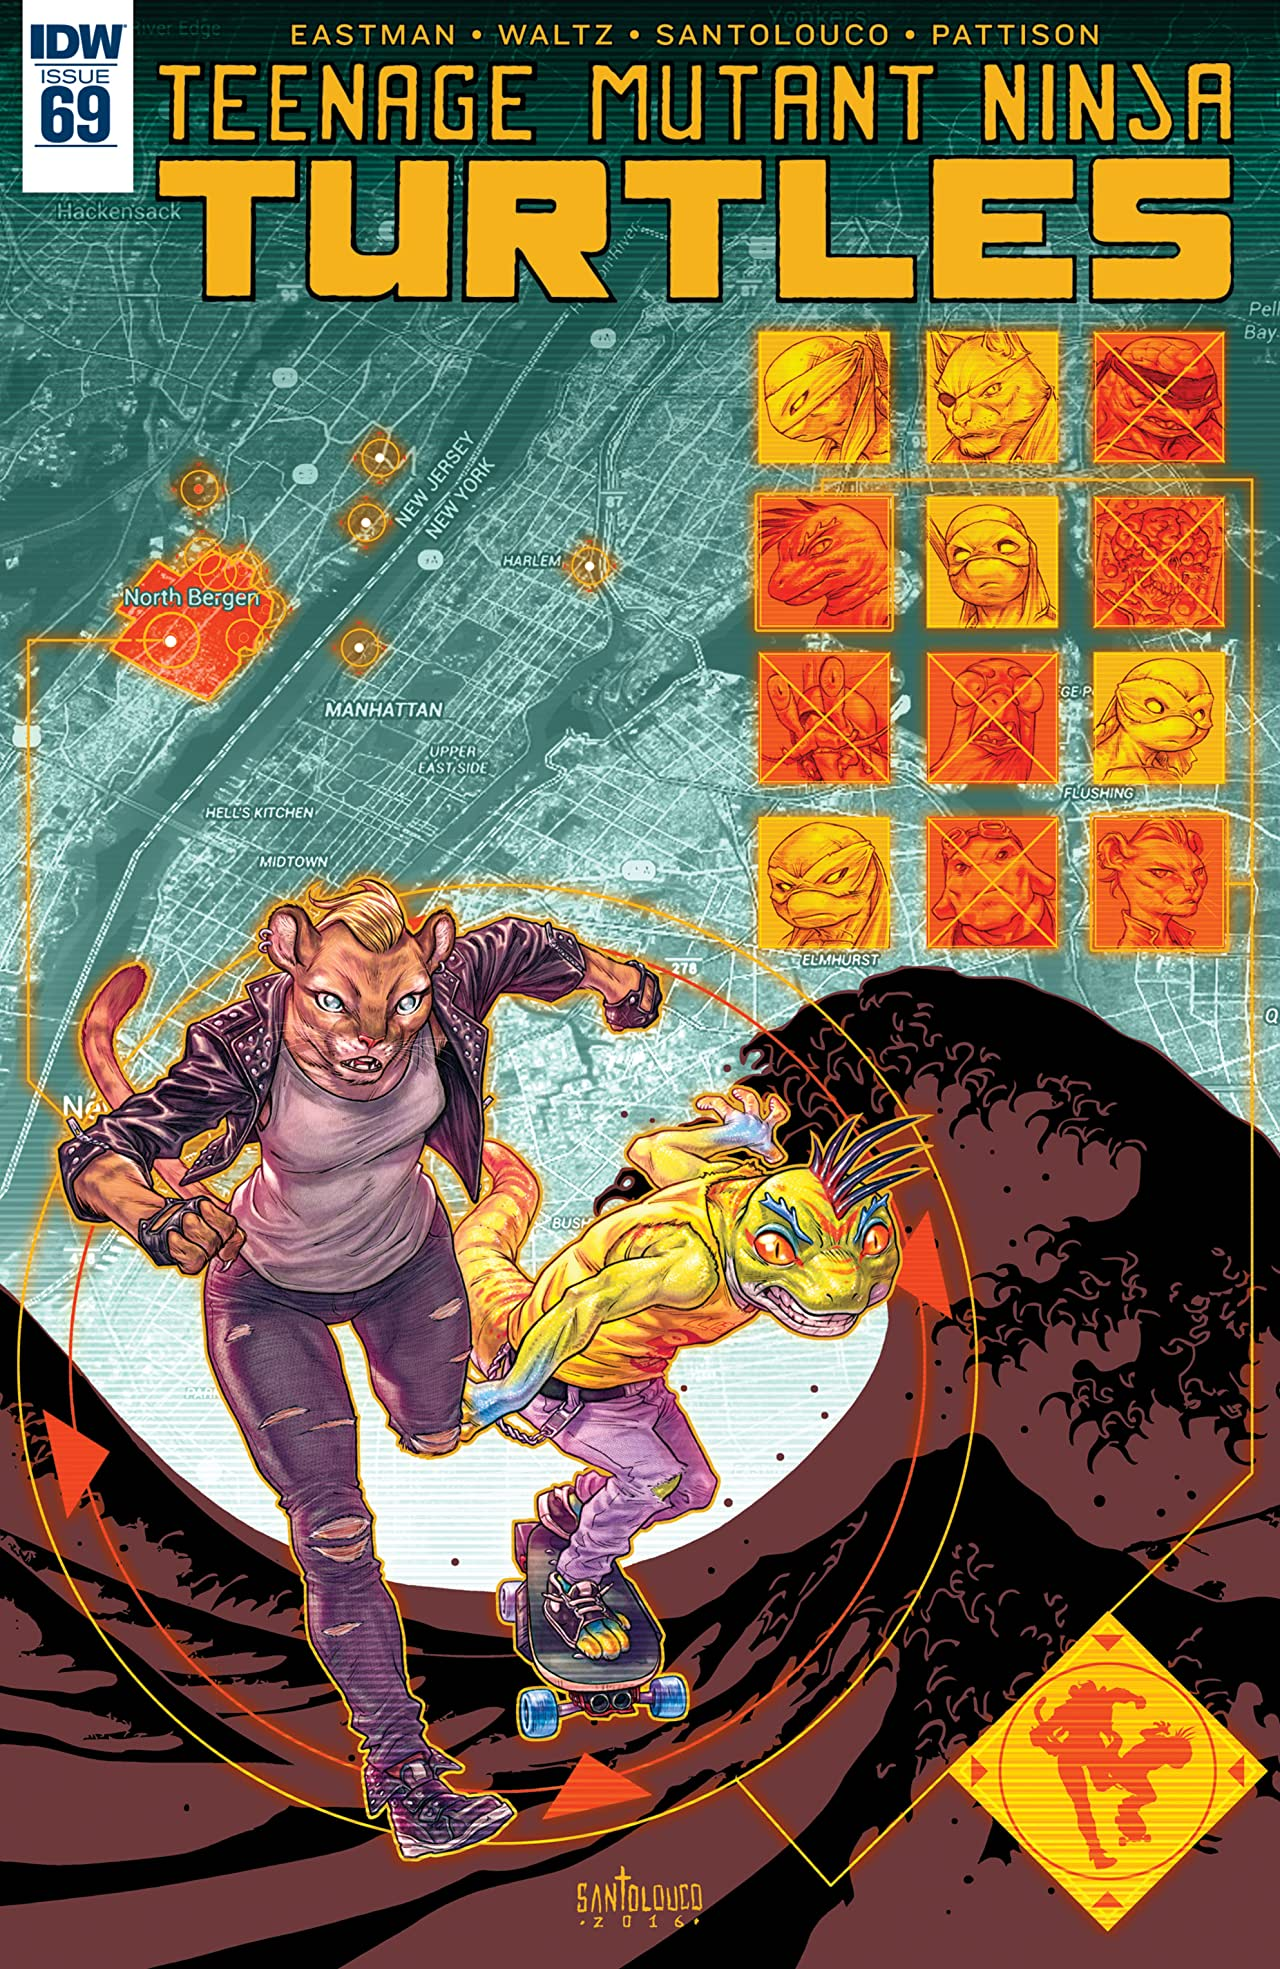 Teenage Mutant Ninja Turtles #69